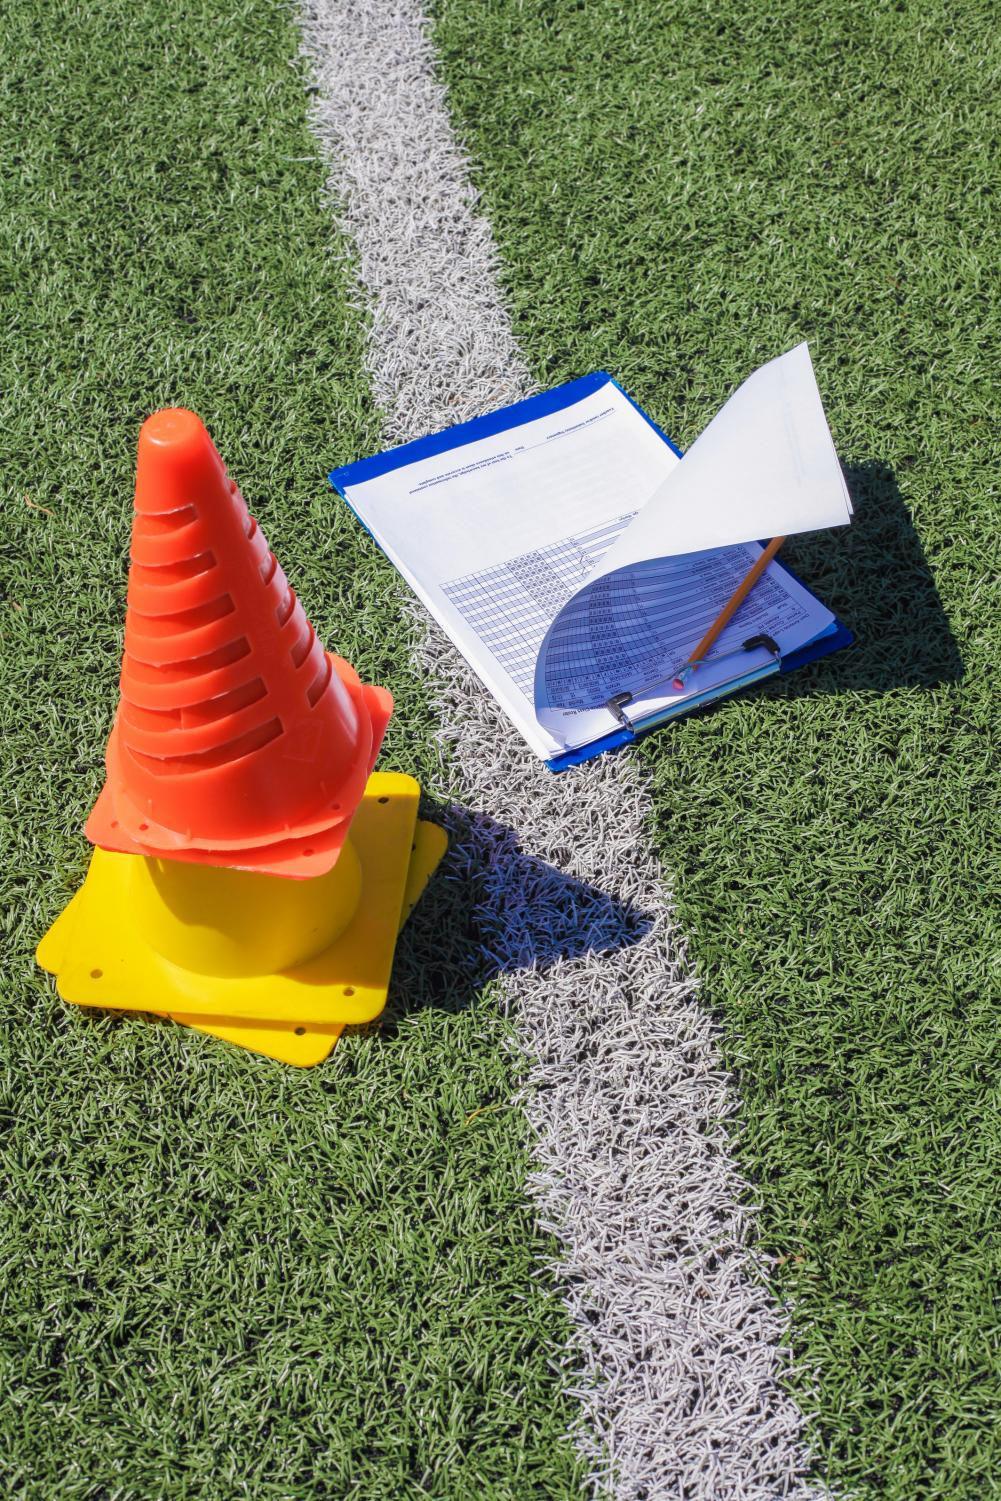 Garcia's clipboard and cones, ready for a day at the field.